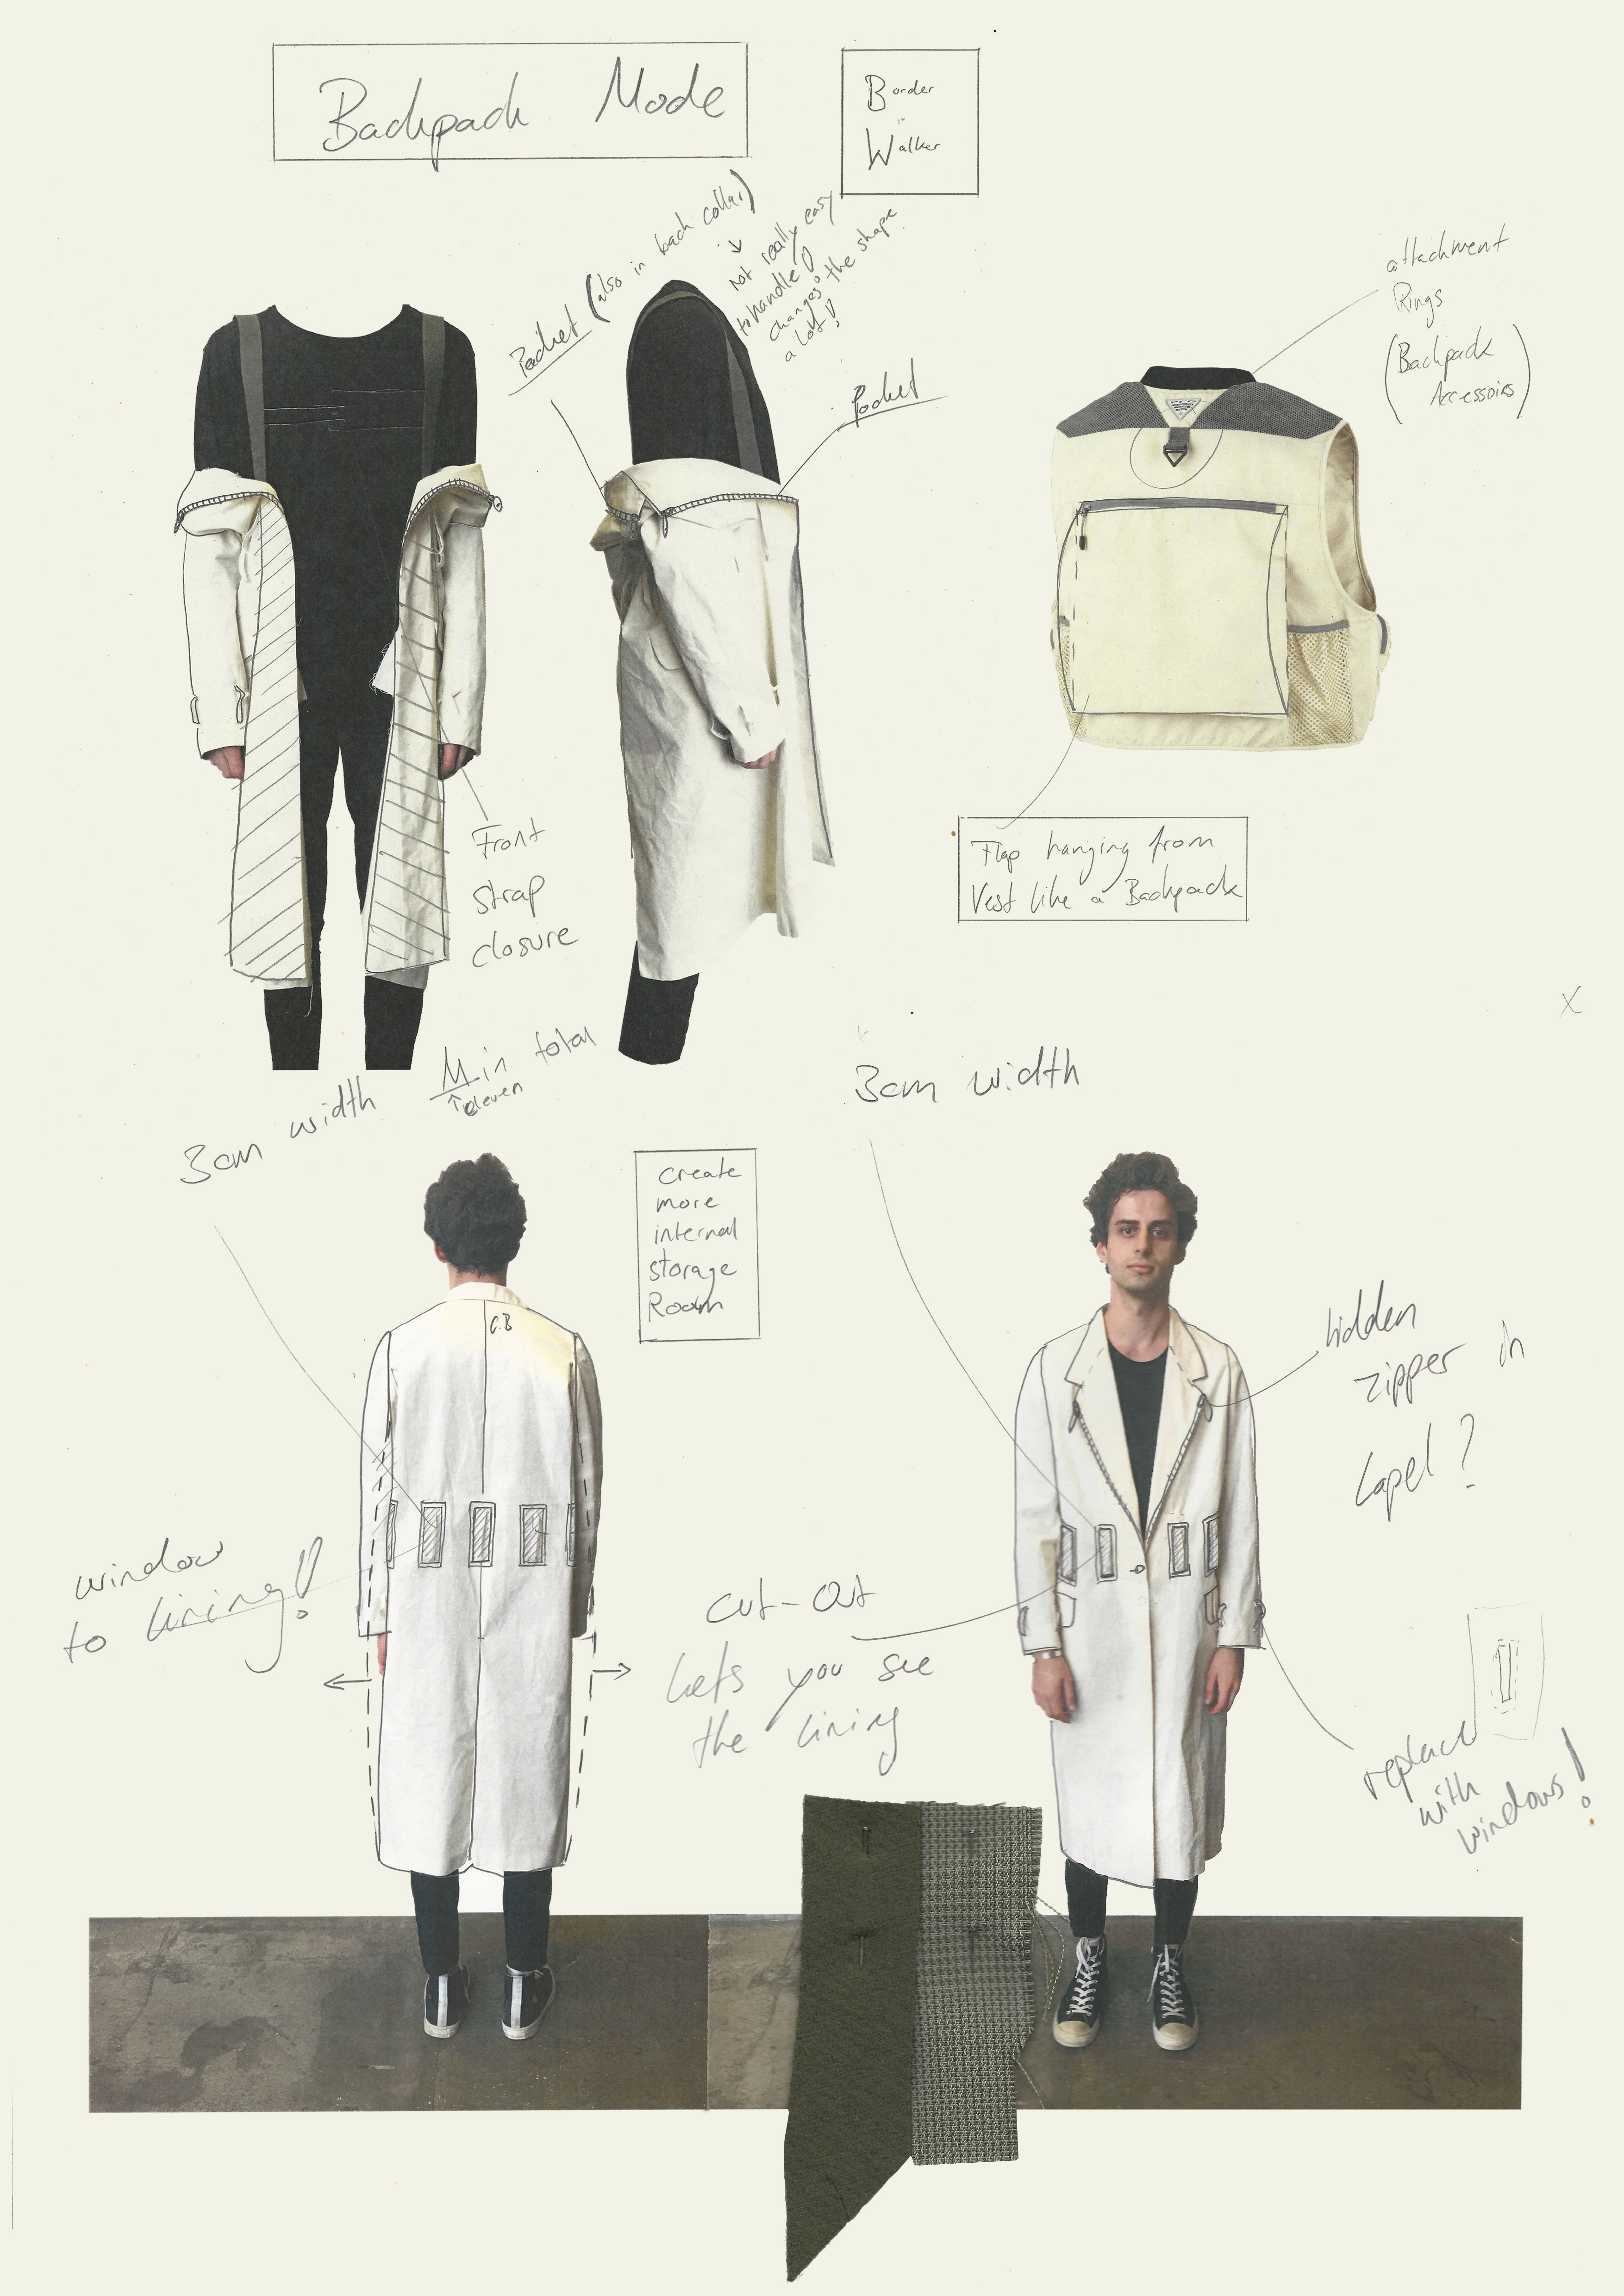 Sketches of student's design for jacket that can be worn with backpack attached